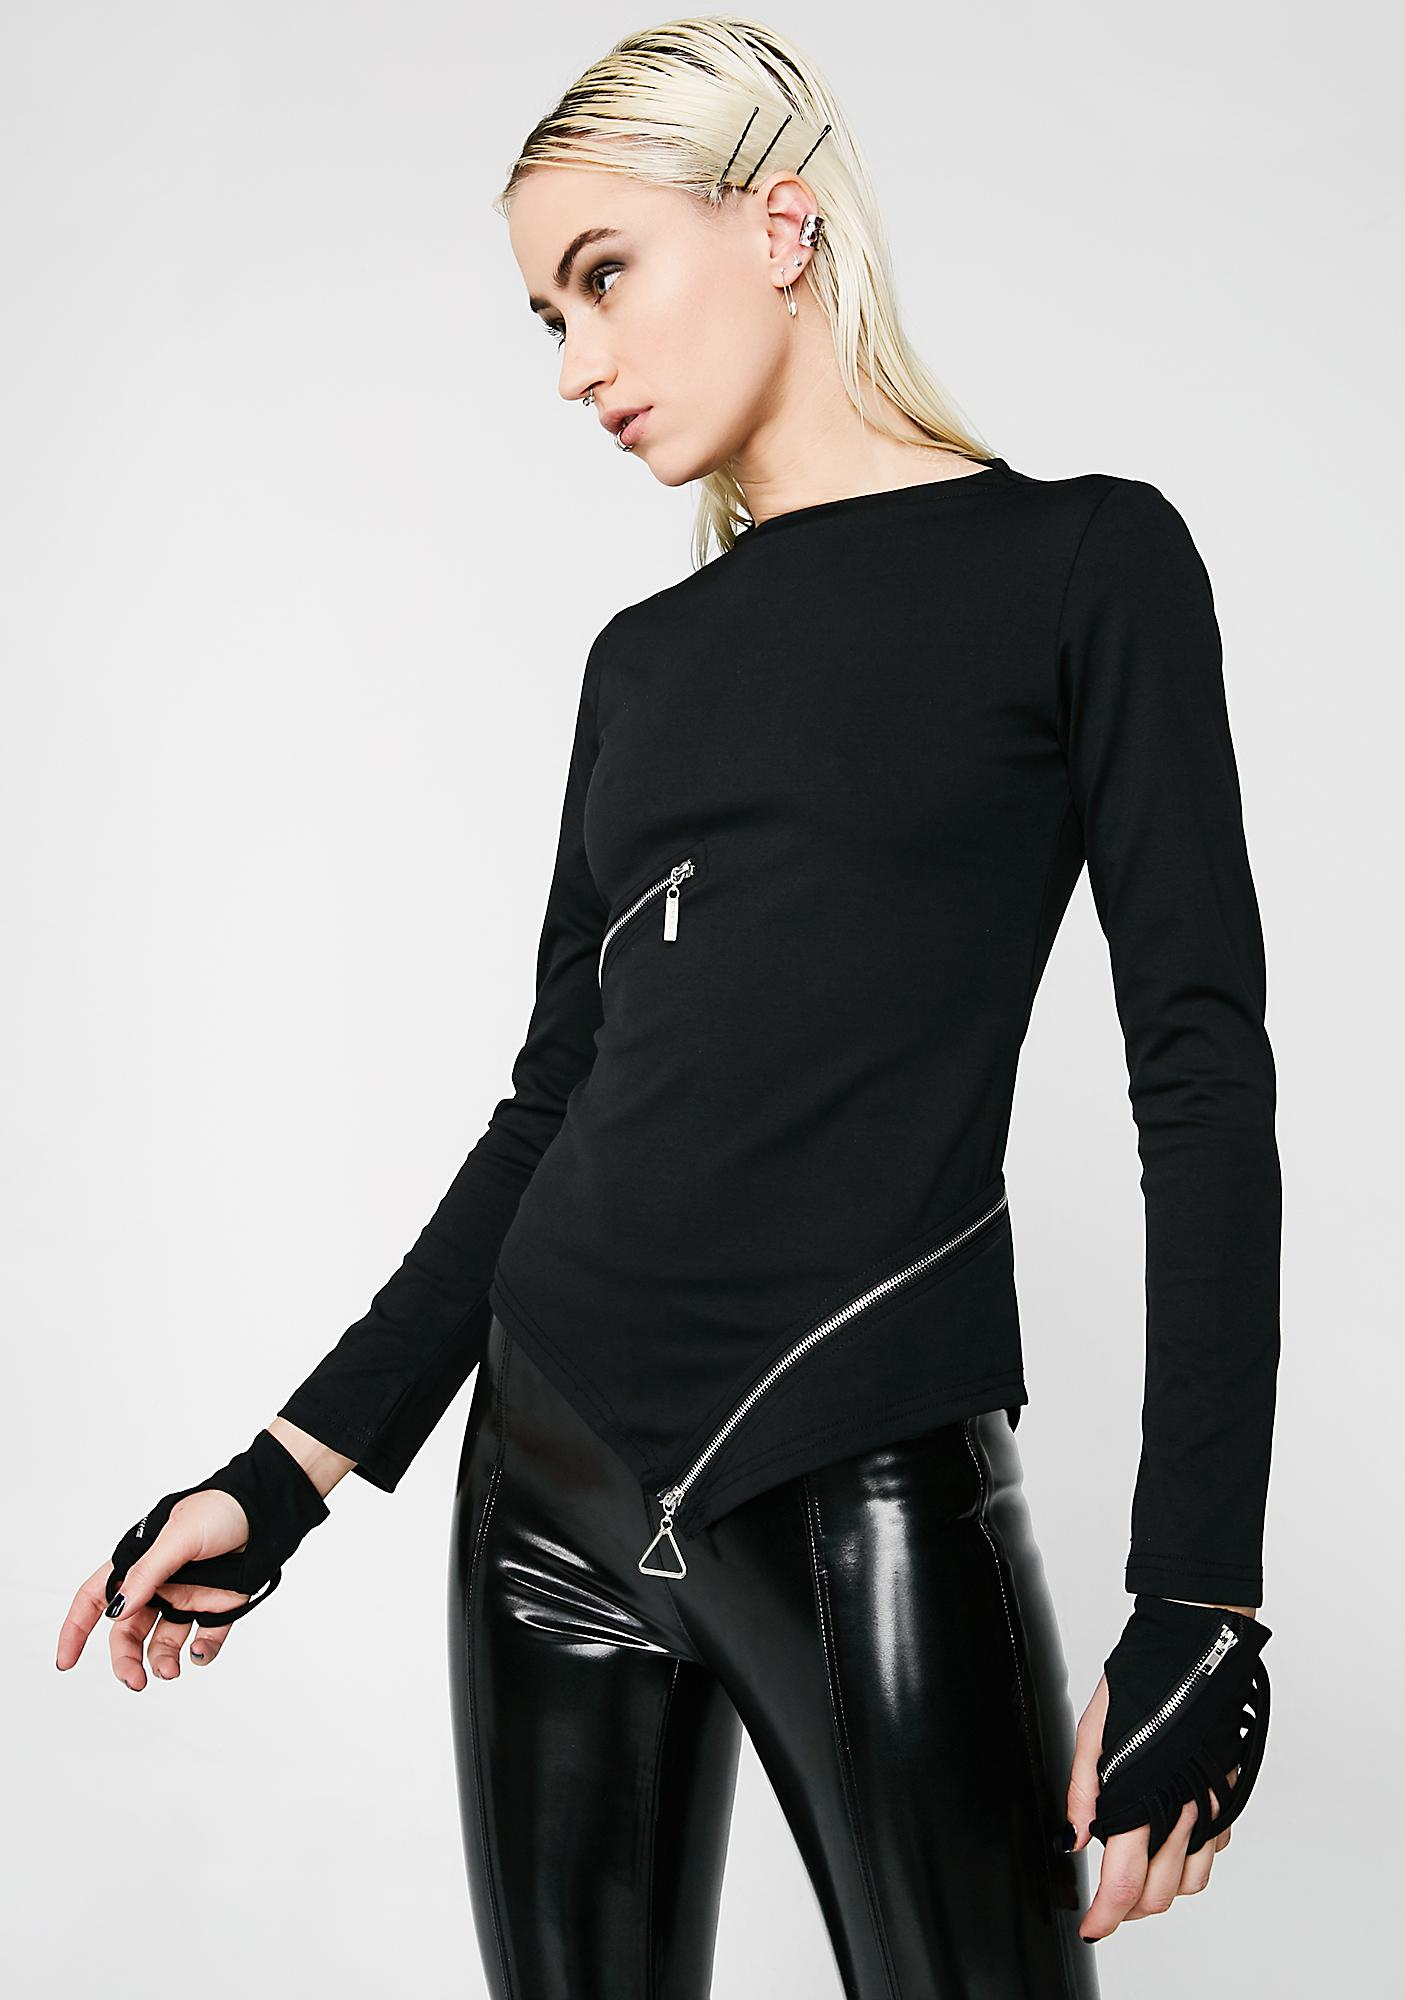 Punk Rave Goth Slim Zipper Tee